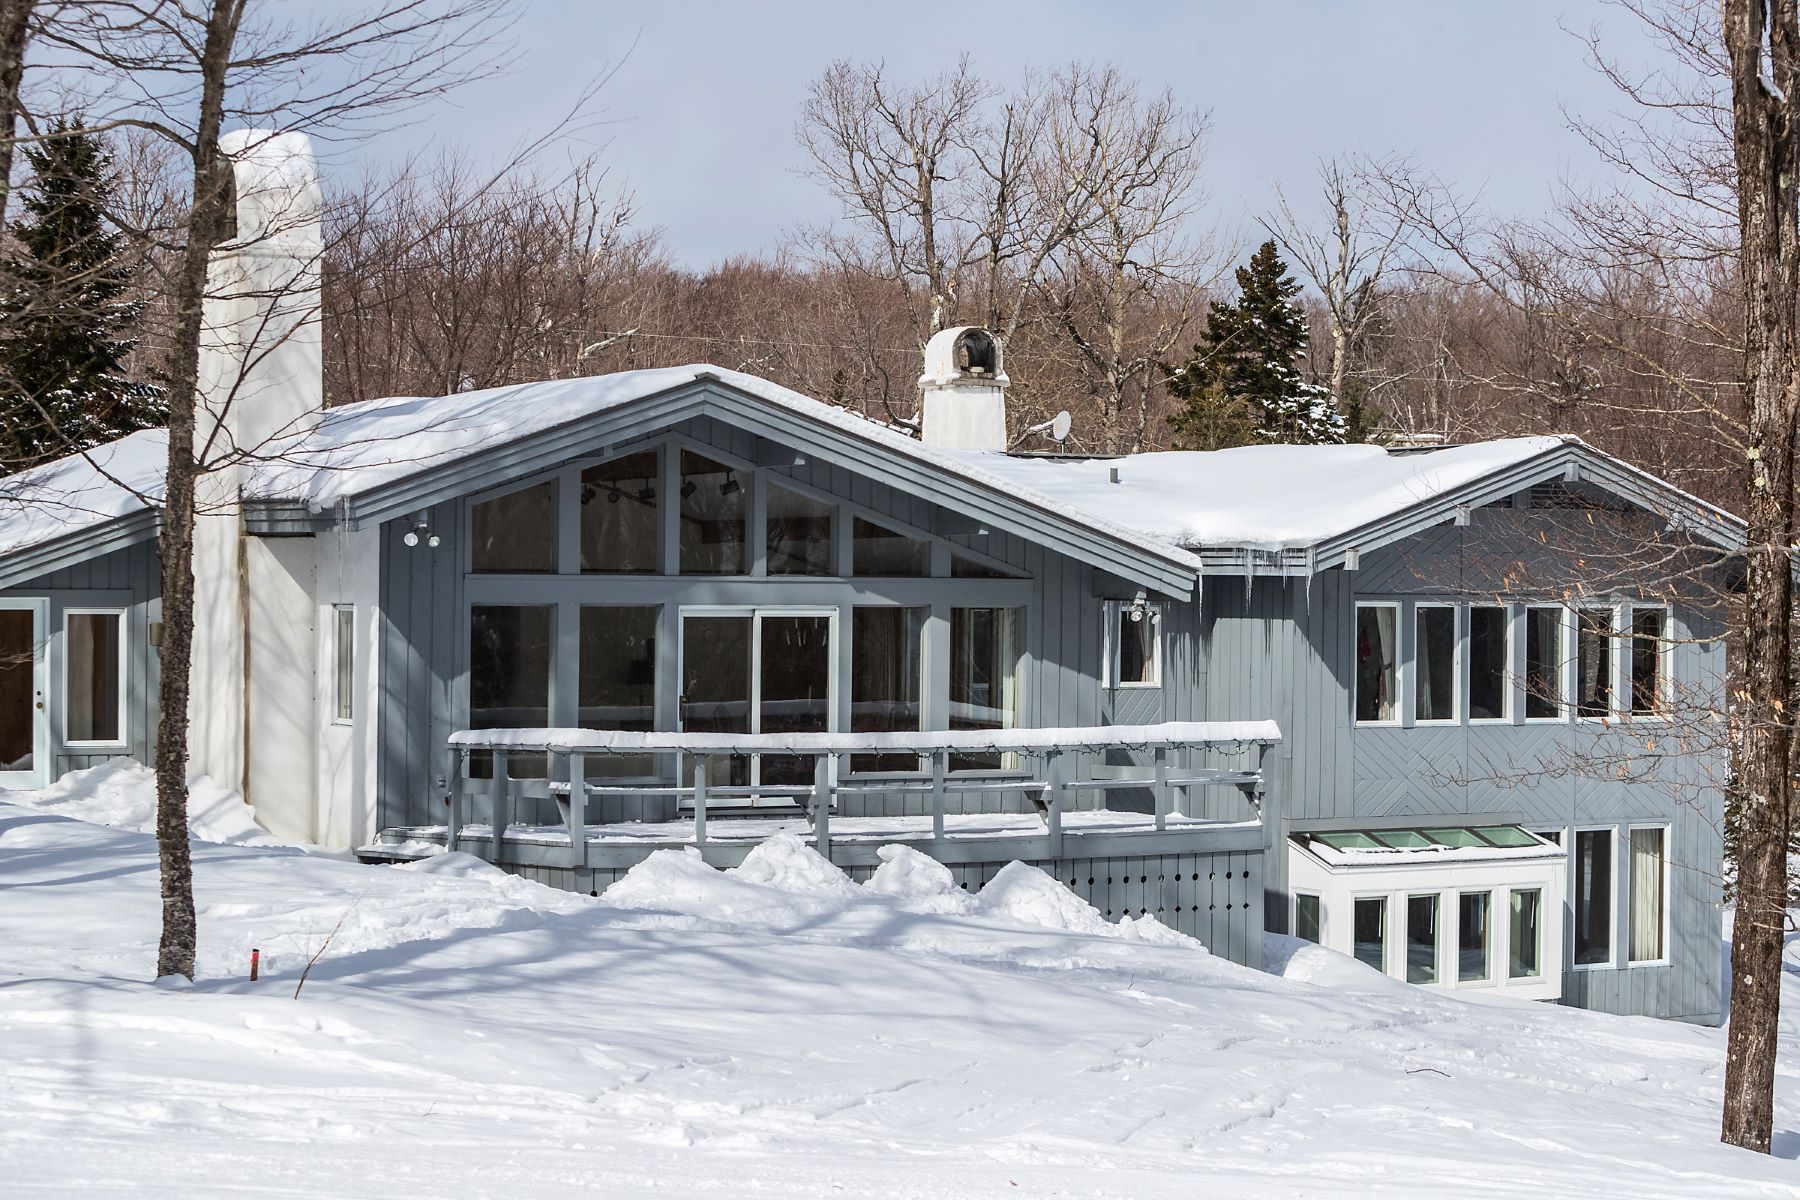 Single Family Home for Sale at 219 North Brookwood Road, Stratton 219 North Brookwood Rd Stratton, Vermont 05155 United States